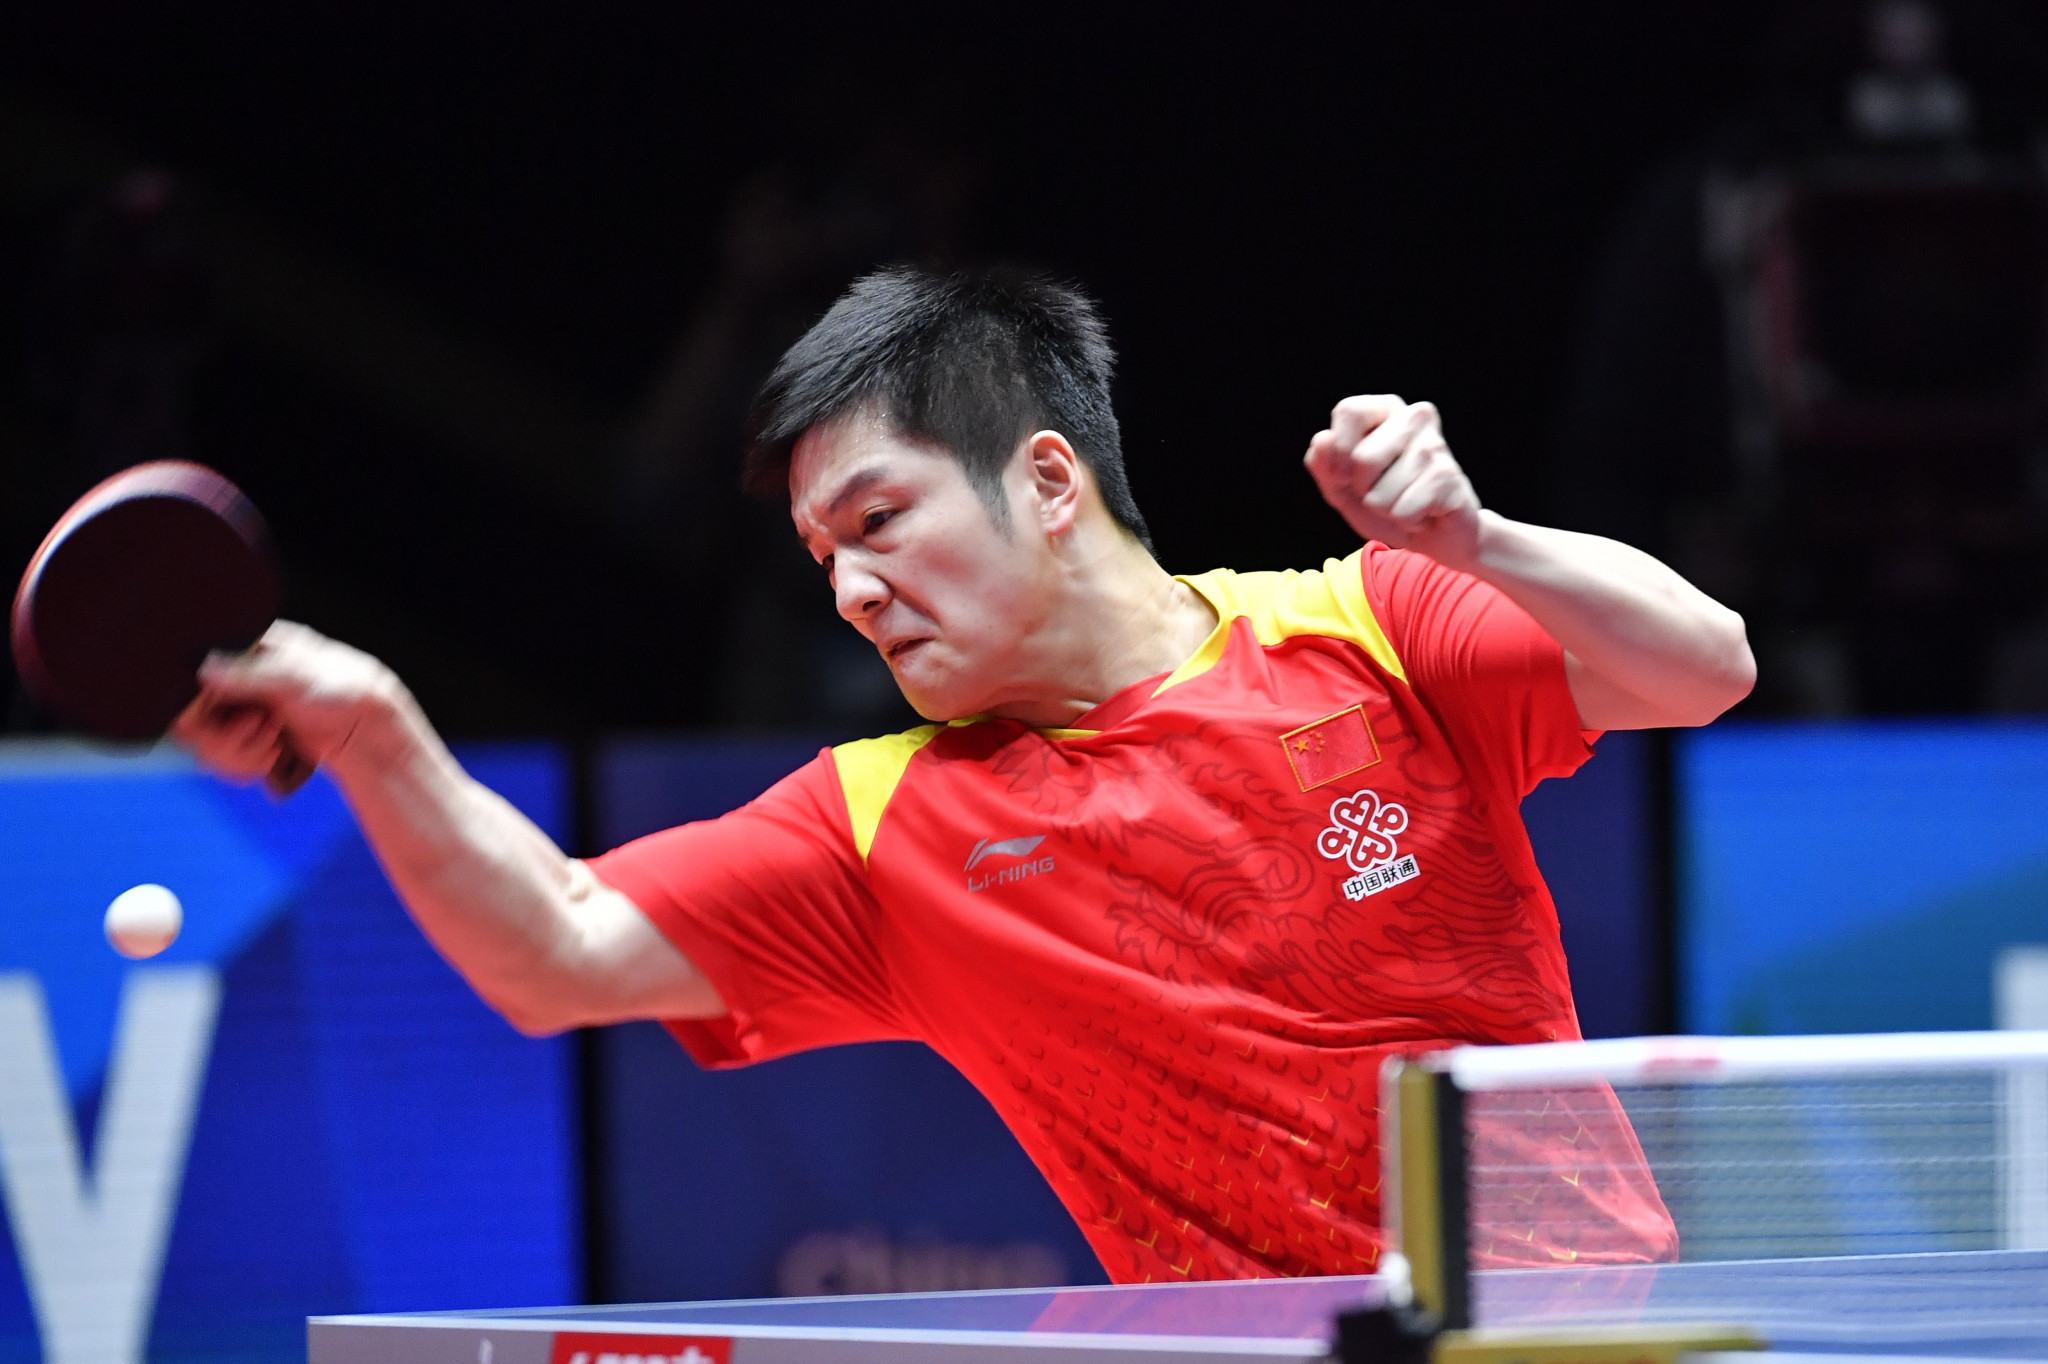 The World Table Tennis Championships is set to be the latest event impacted by the coronavirus ©Getty Images